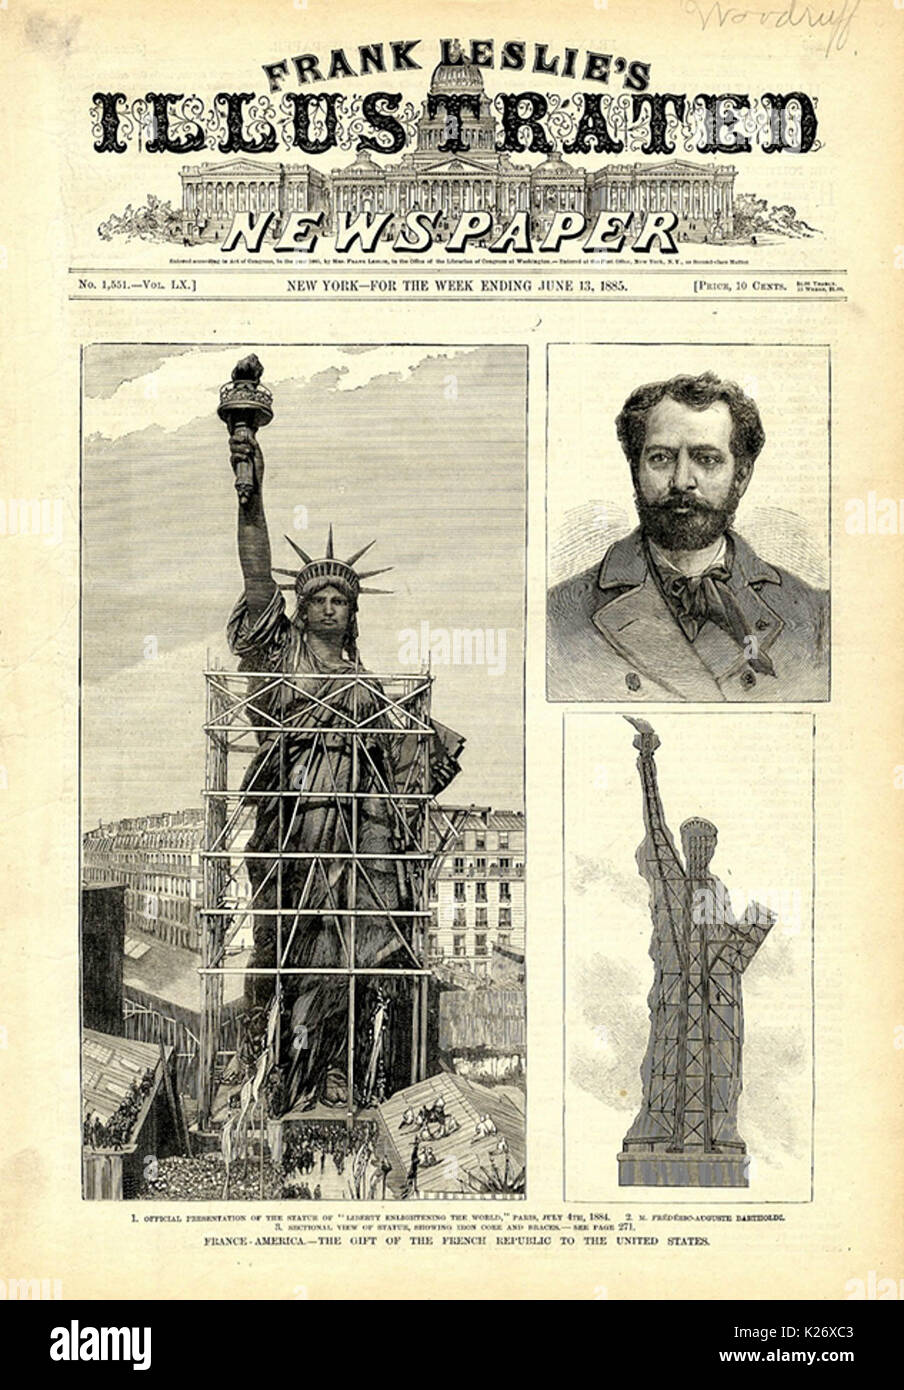 Frank Leslie's Illustrated Newspaper, June 1885, showing (clockwise from left) woodcuts of the completed statue in Paris, Bartholdi, and the statue's interior structure - Stock Image